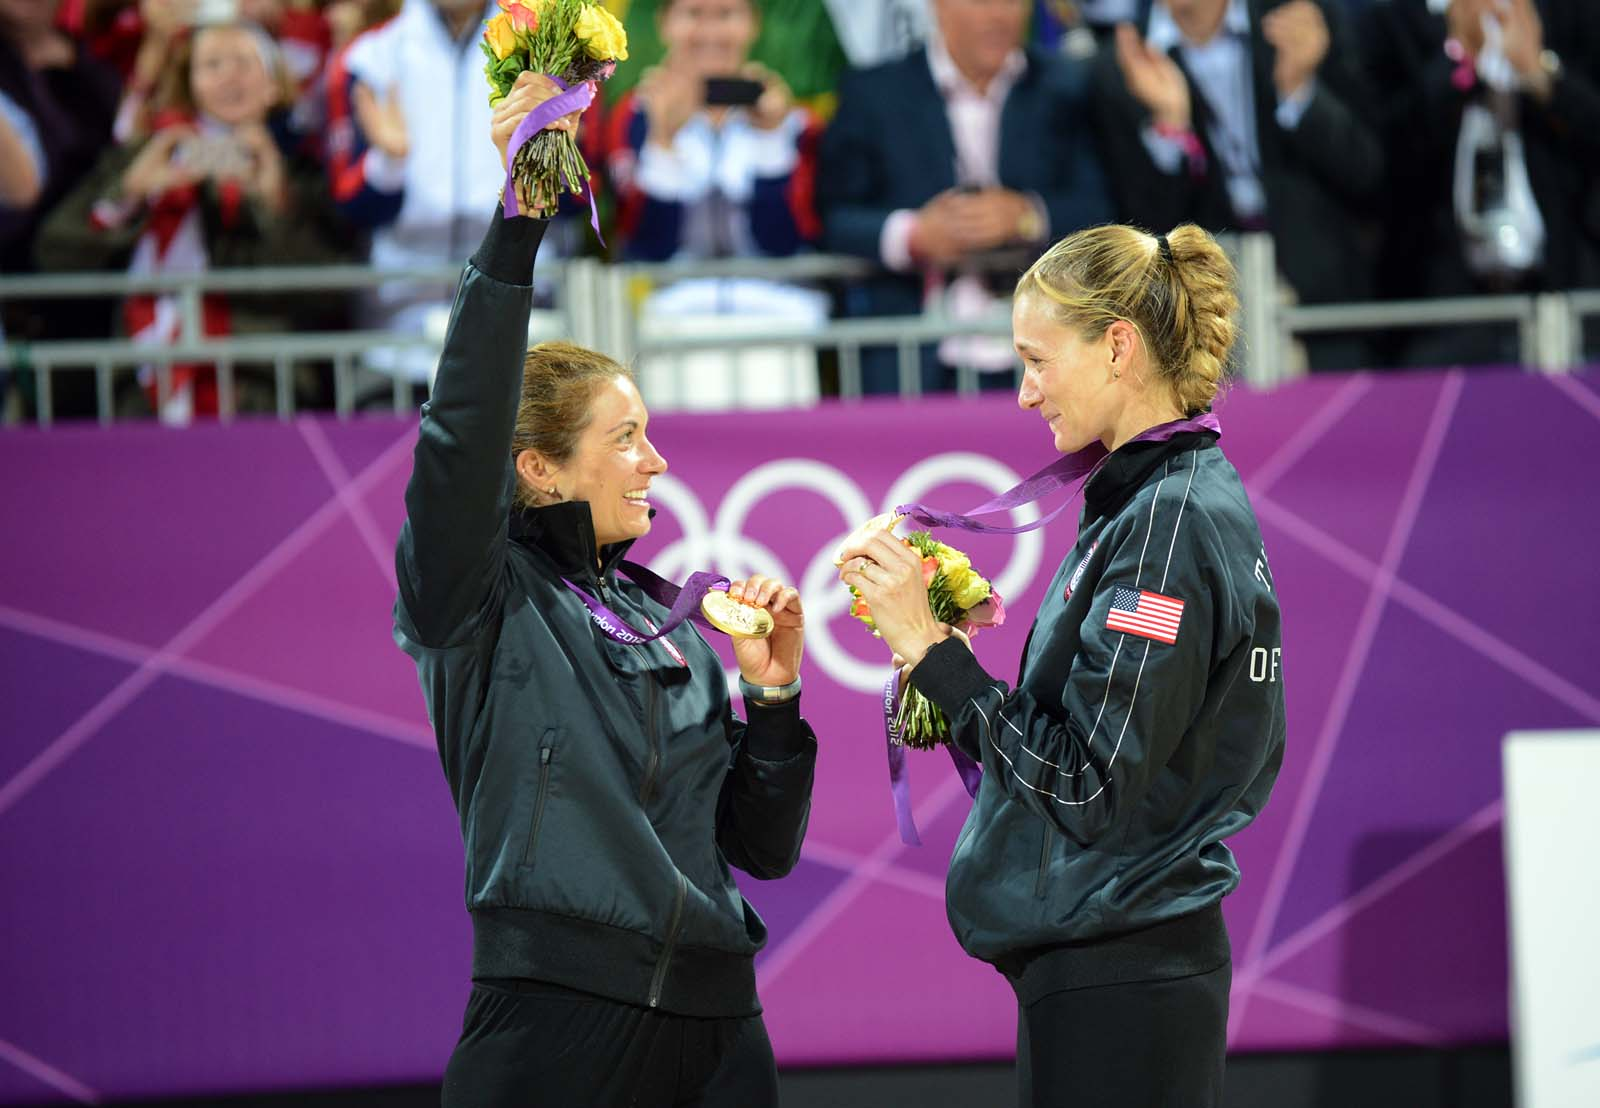 Kerri Walsh Jennings and Misty May Treanor celebrate winning gold at the London Olympics in 2012